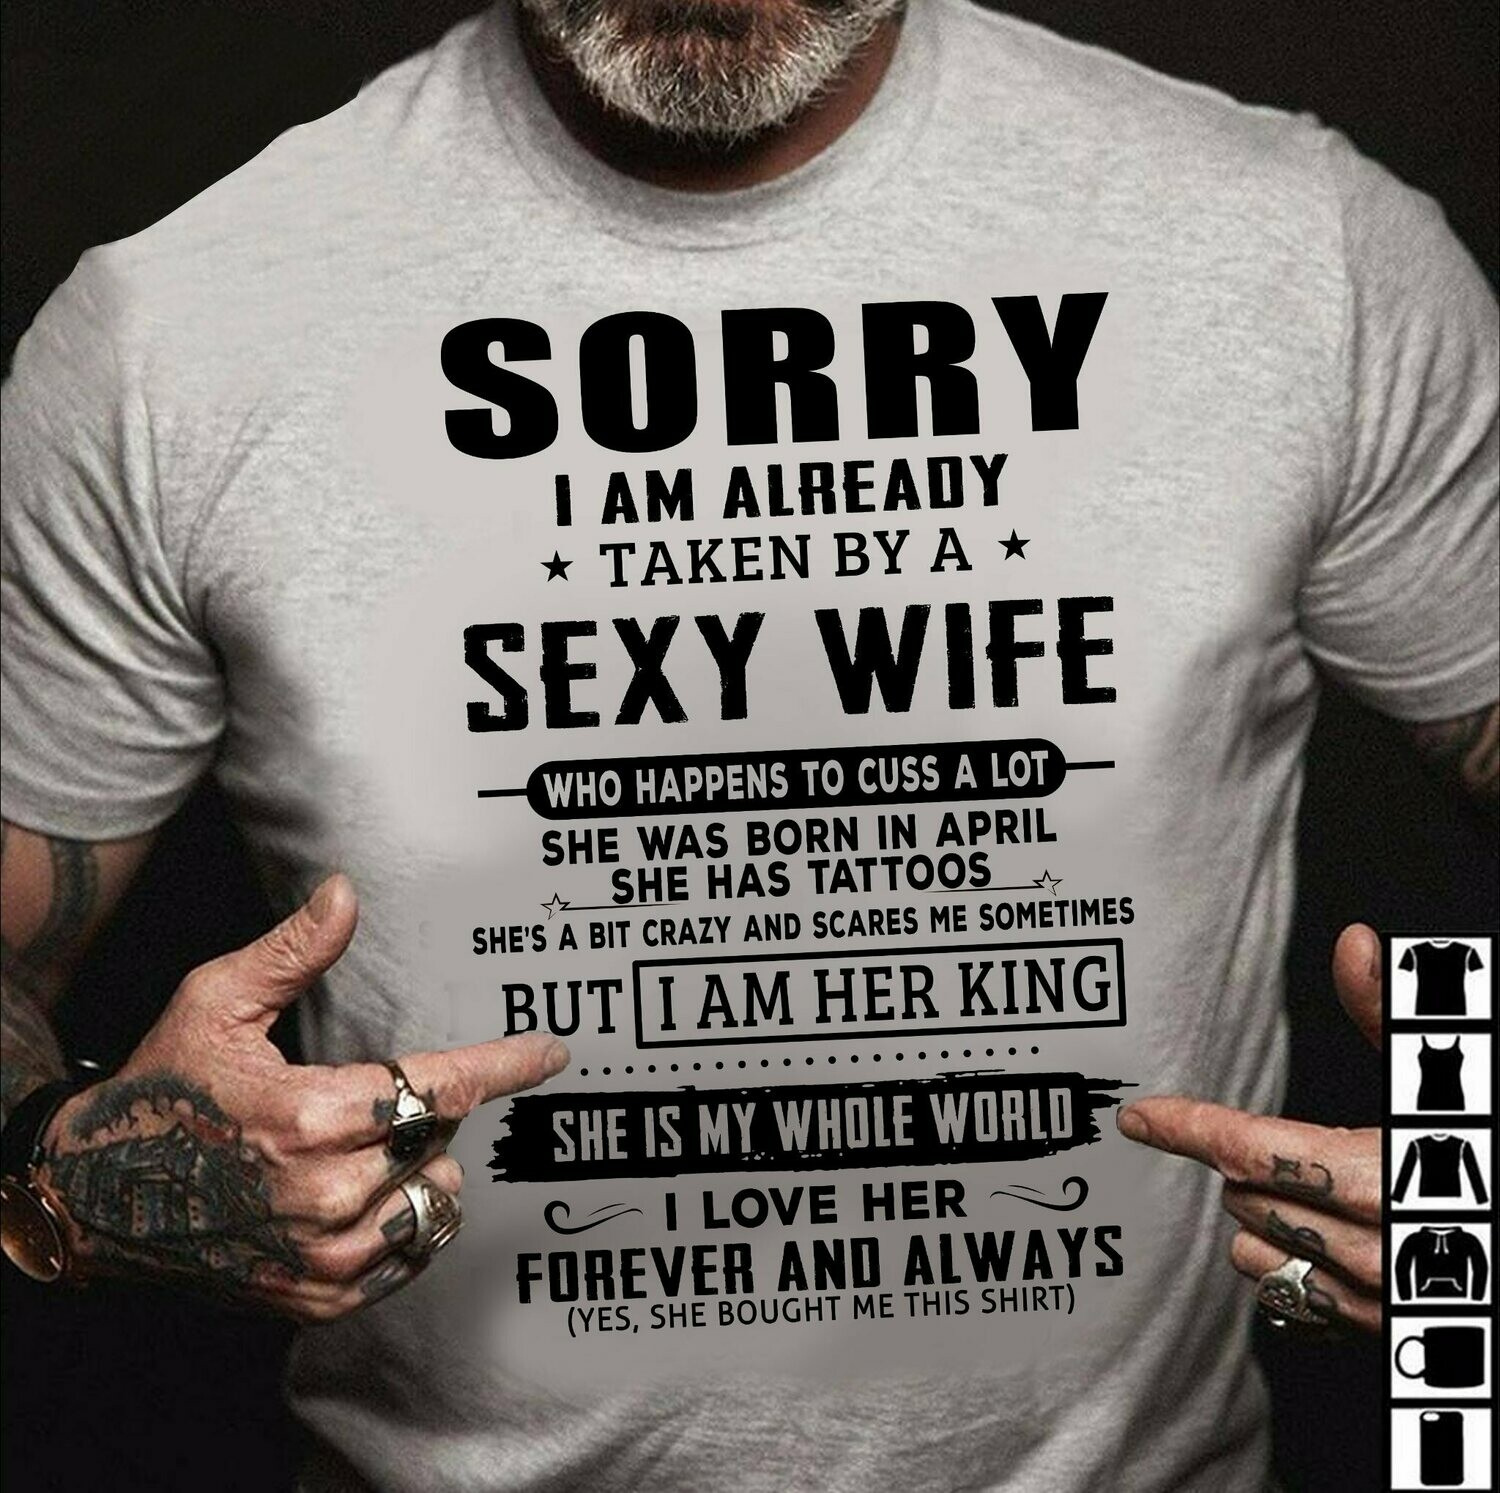 sorry i'm already taken by a sexy wife but i am her King shirt, Sorry This Girl Is Already Taken By A Sexy Bearded Man T Shirt, Funny Women's T-Shirt, Girls Ladies Fashion Gift, Hipster Tumblr Tee